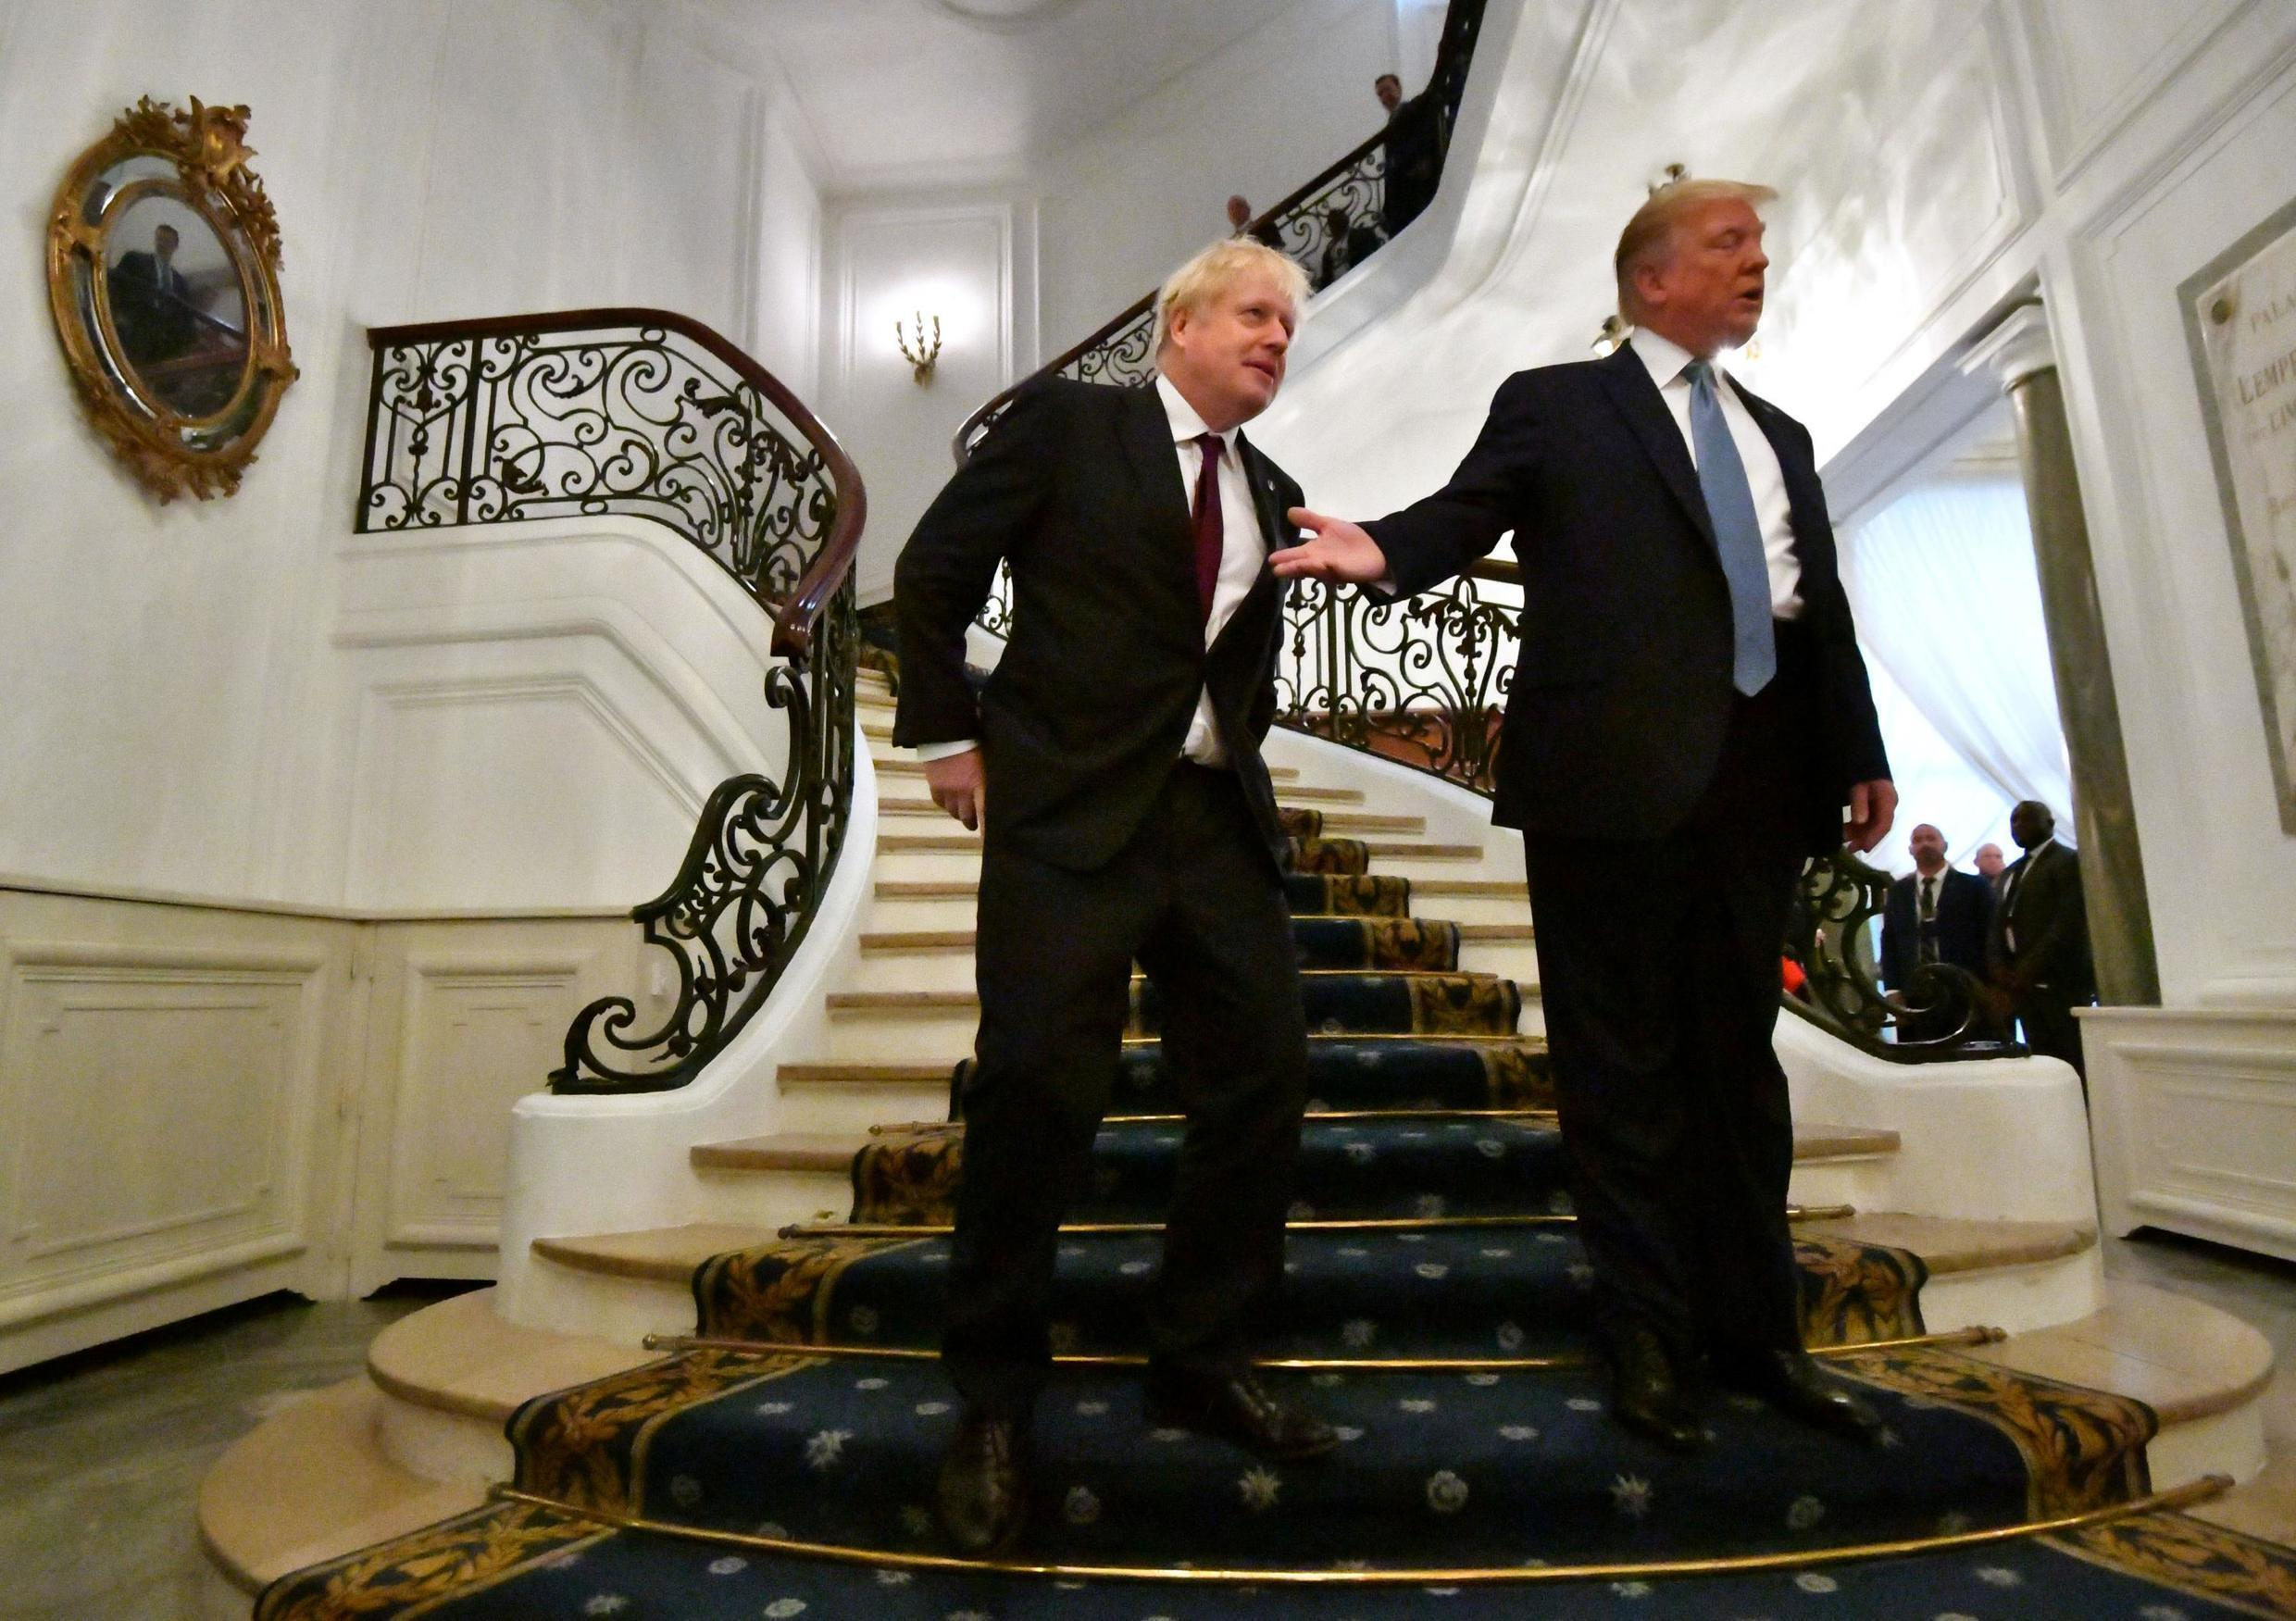 U.S. President Donald Trump and Britain's Prime Minister Boris Johnson arrive for a bilateral meeting during the G7 summit in Biarritz, France, 25 August, 2019.